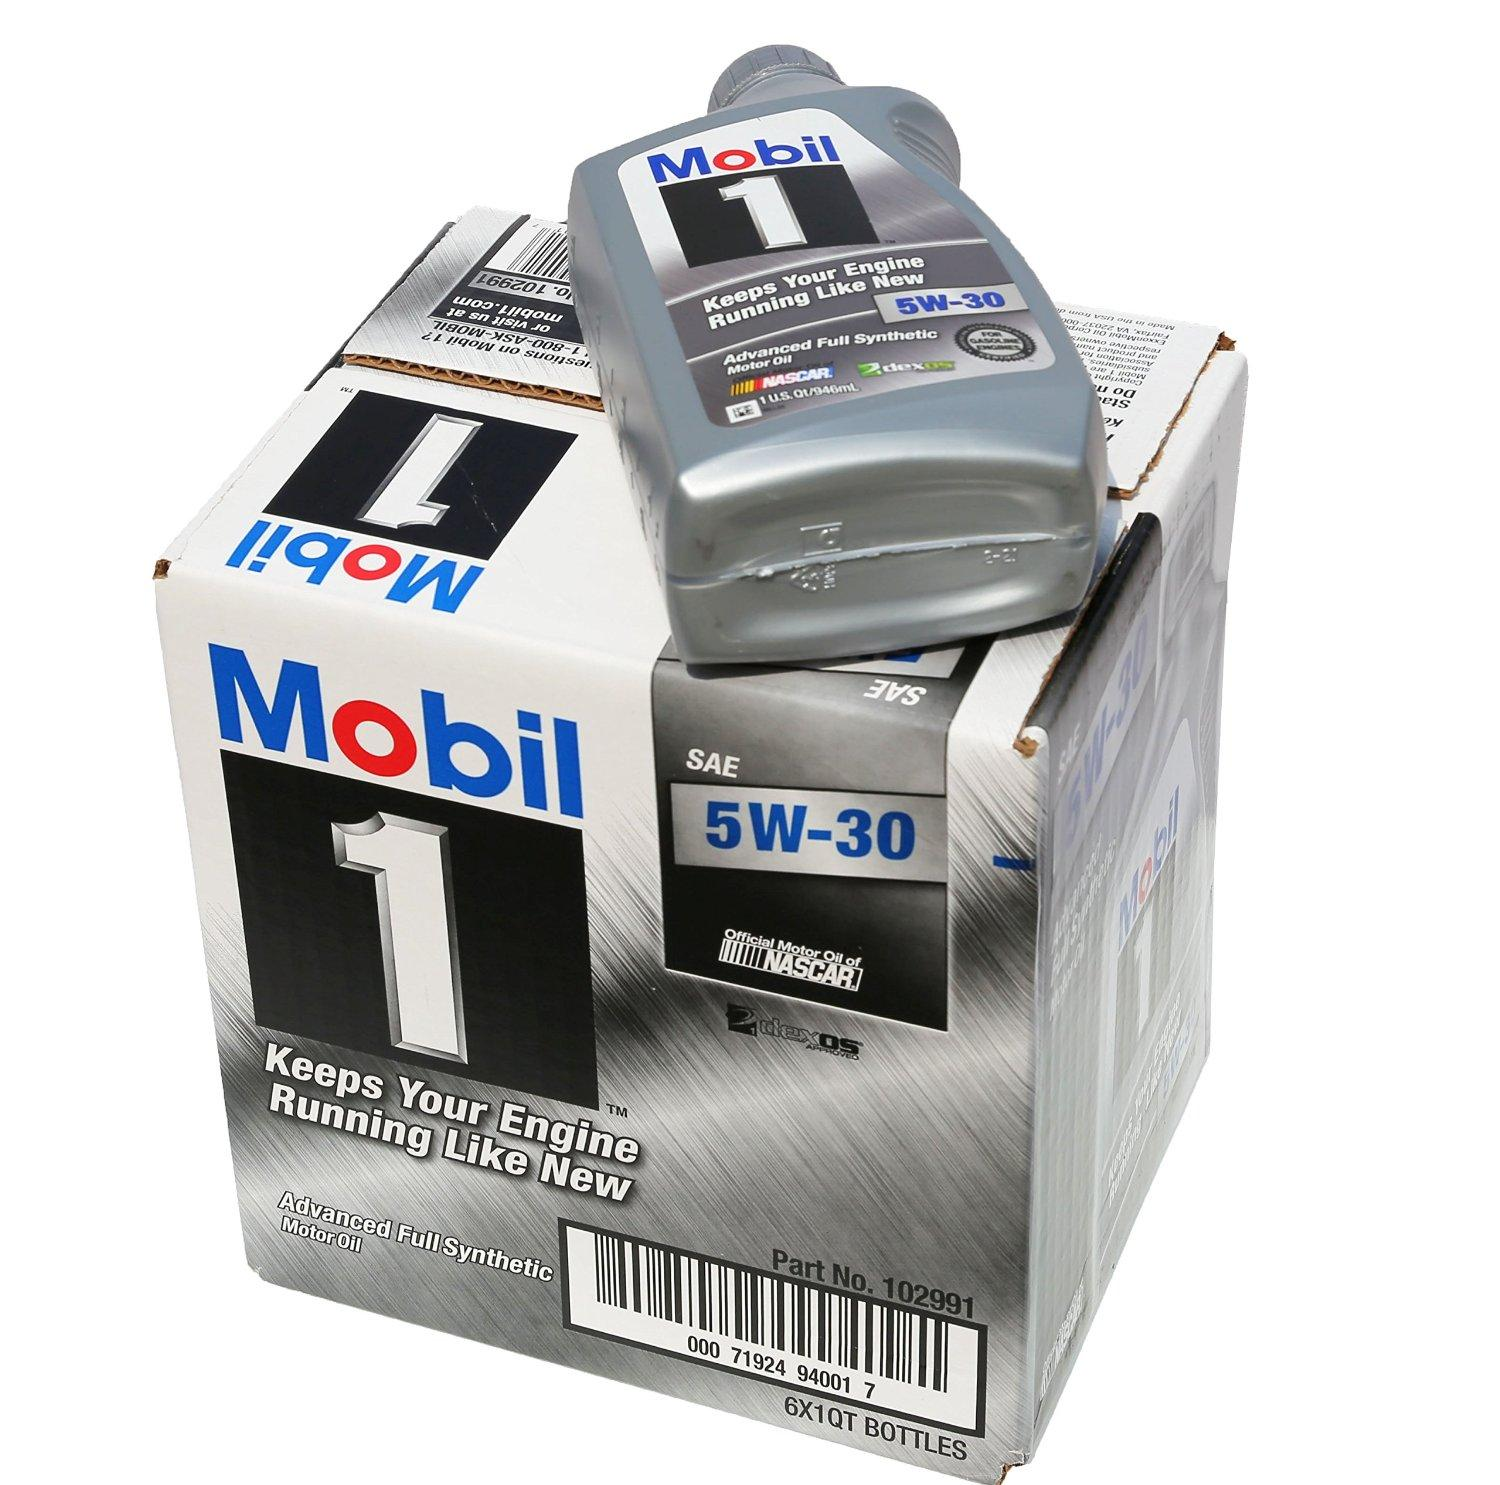 $27.99 Mobil 1 94001 5W-30 Synthetic Motor Oil - 1 Quart (Pack of 6)